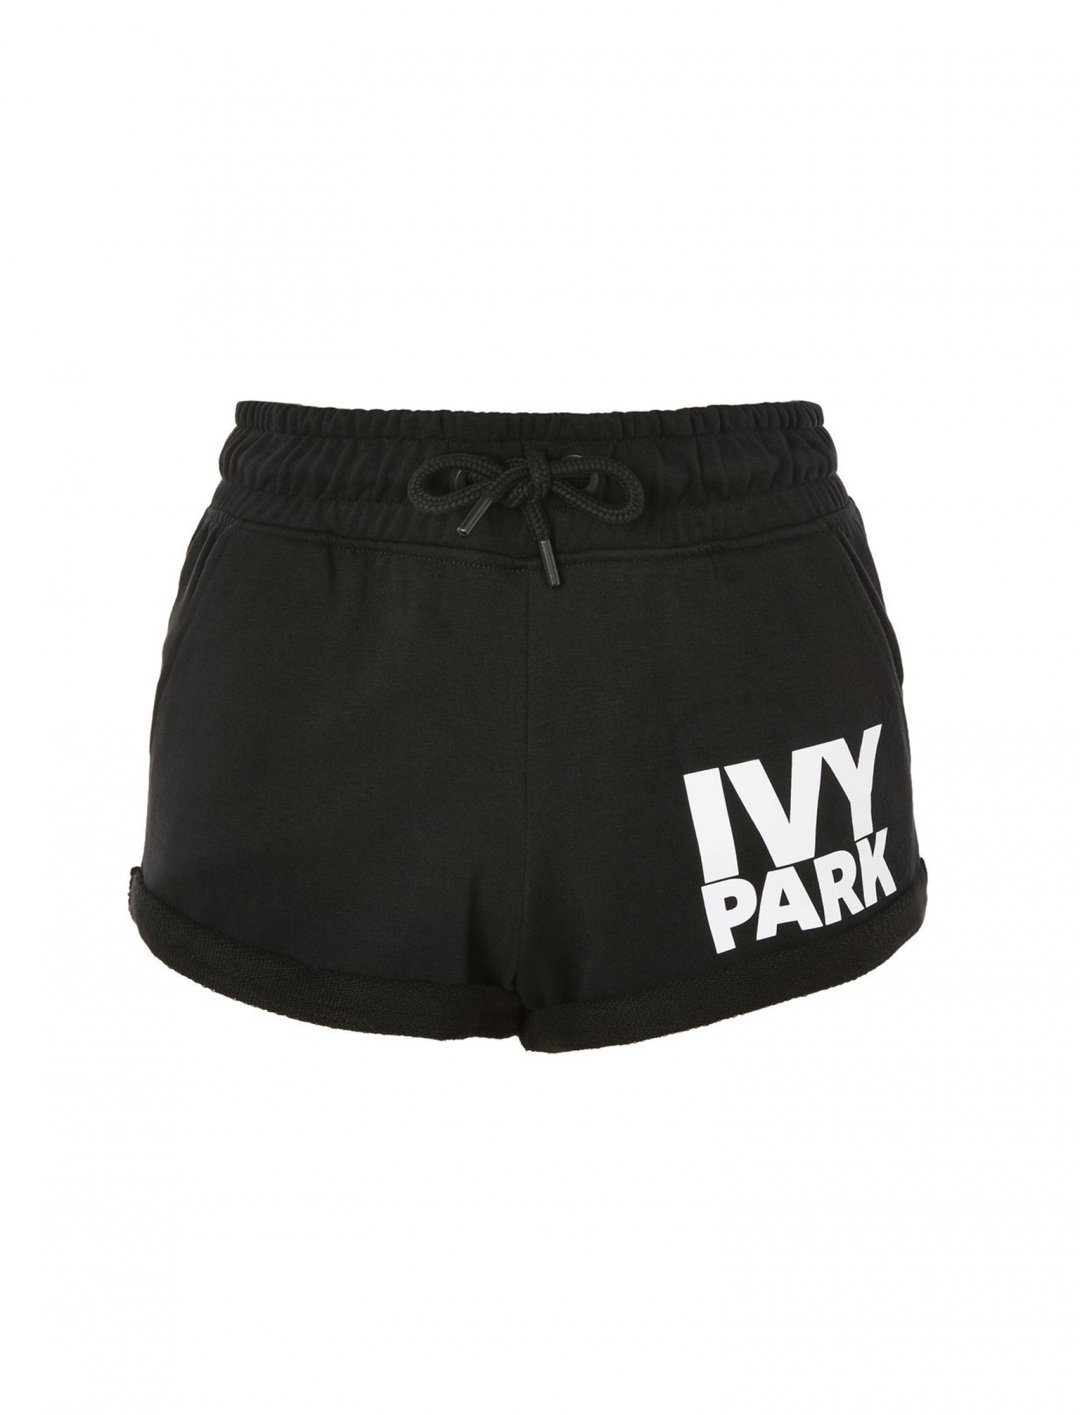 "Ivy Park Jersey Short {""id"":5,""product_section_id"":1,""name"":""Clothing"",""order"":5} Ivy Park"